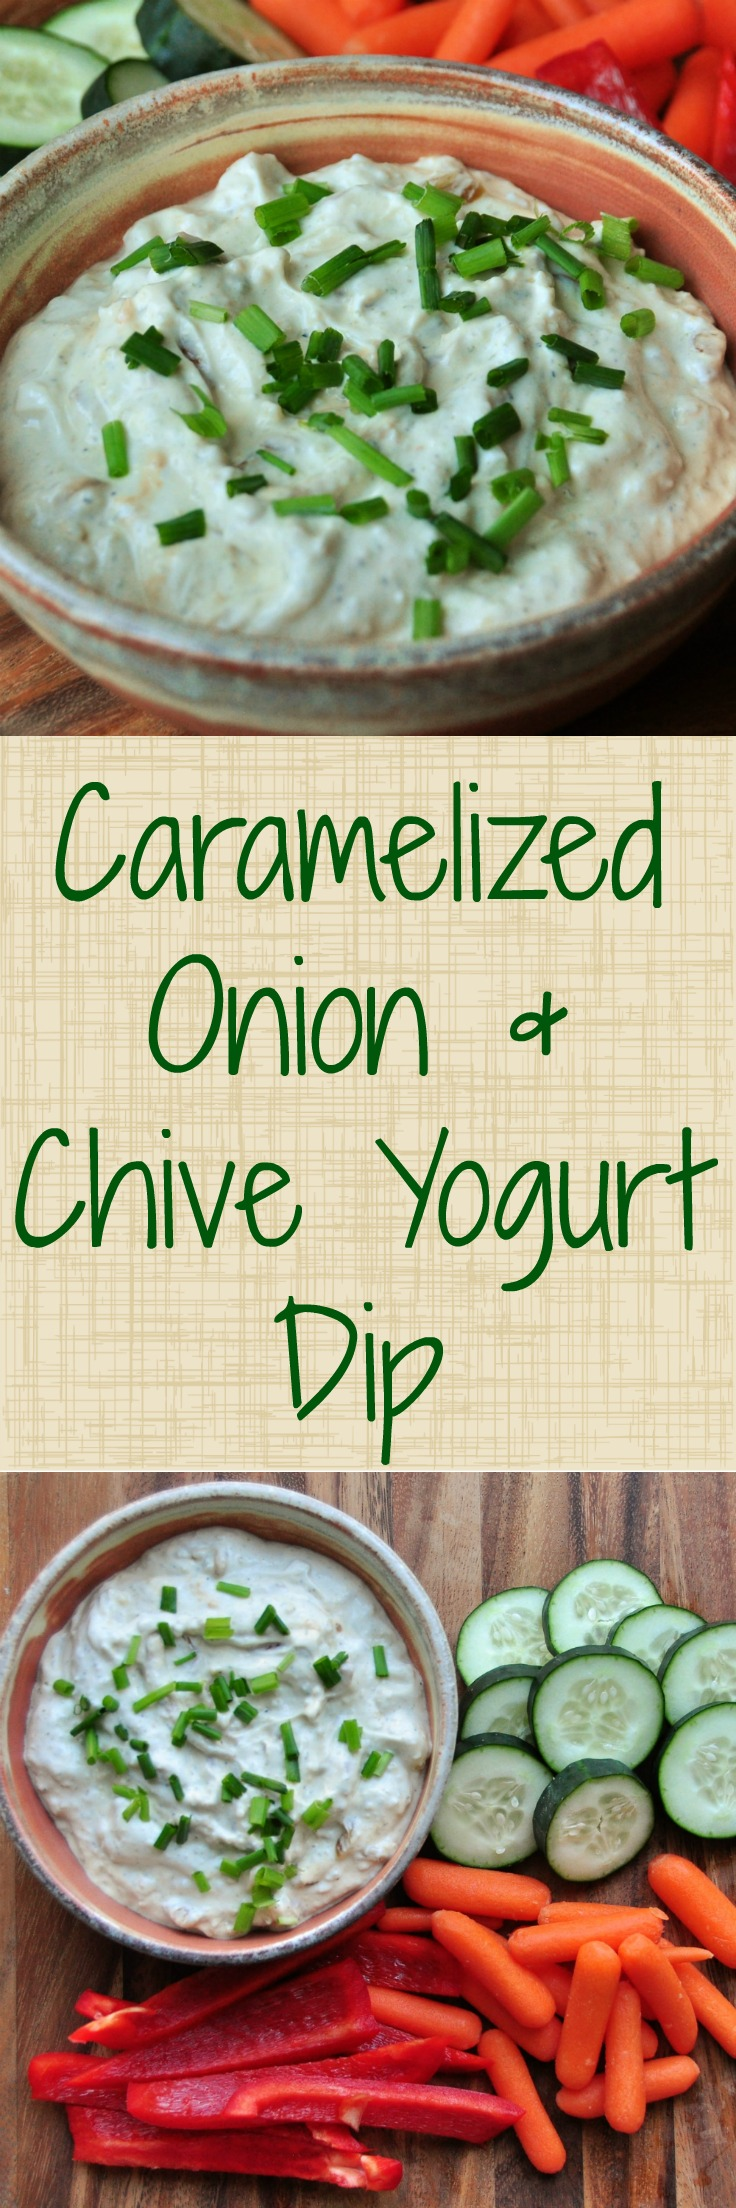 Yogurt dip with caramelized onions and chives.  Perfect with chips or veggies! #sponsored @stonyfield @simplyorganic